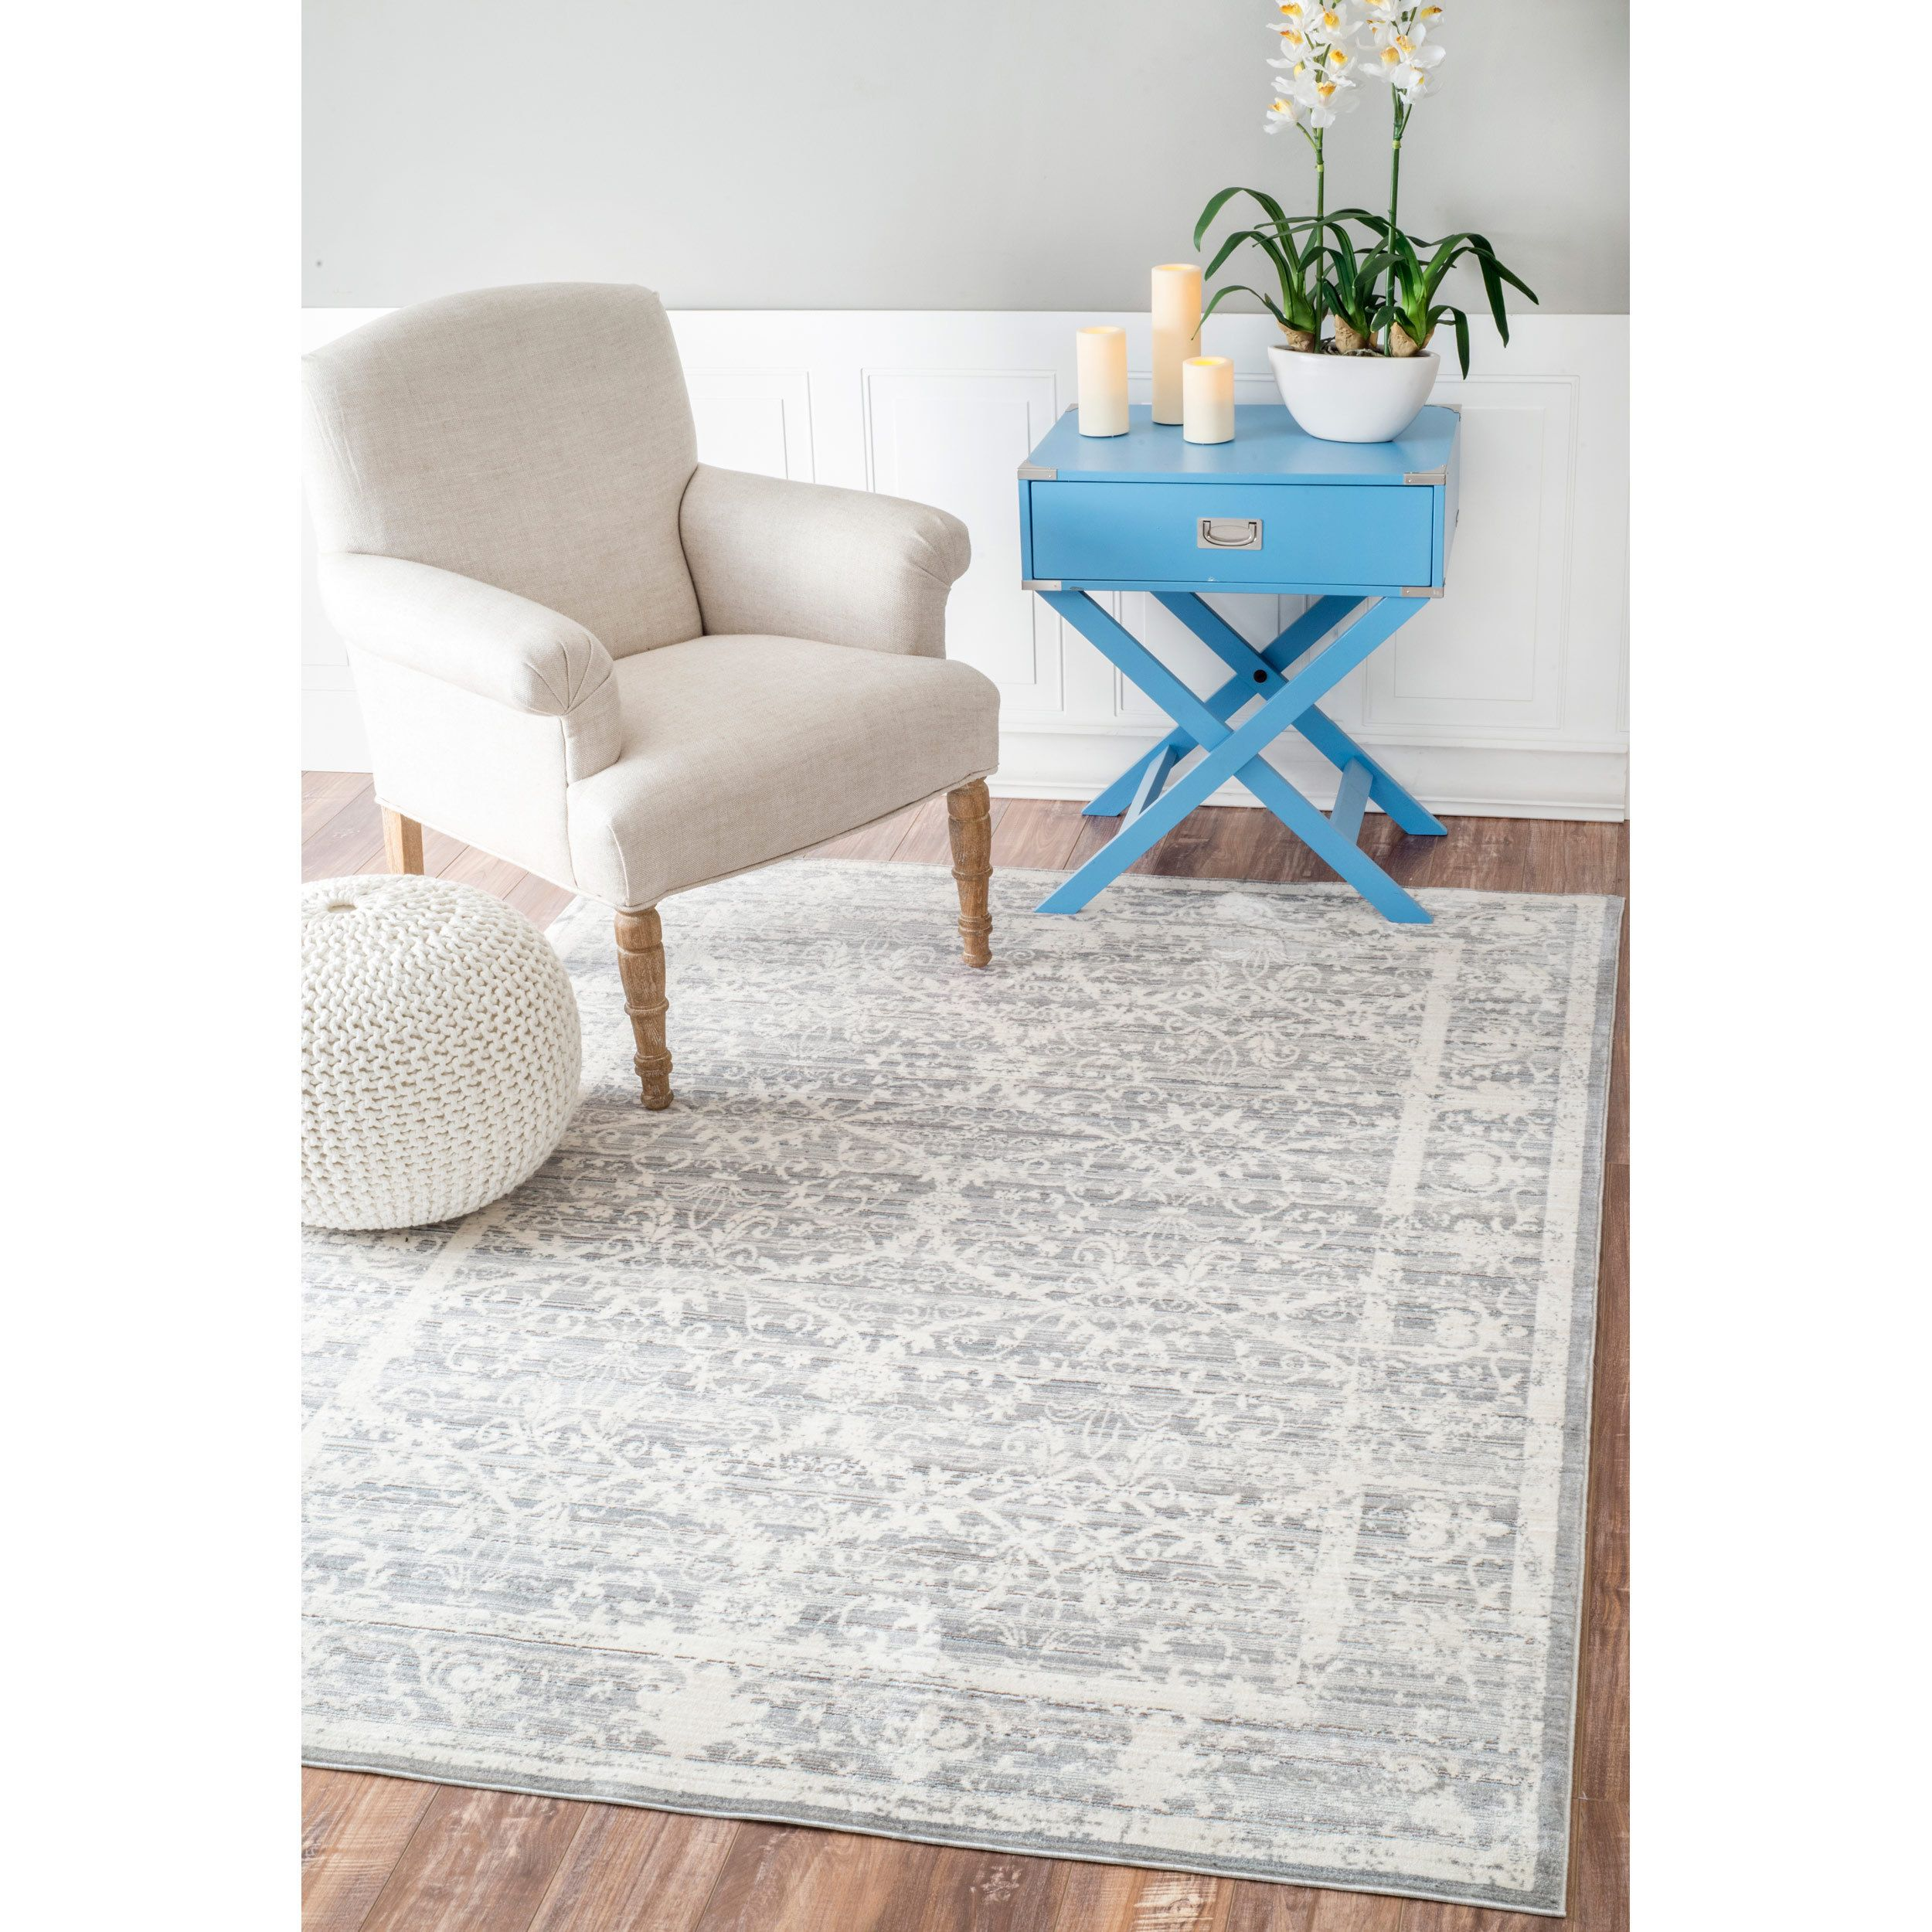 NuLOOM Traditional Vintage Flourish Grey Rug 9 X 12 By Nuloom Polyester RugsDining Room